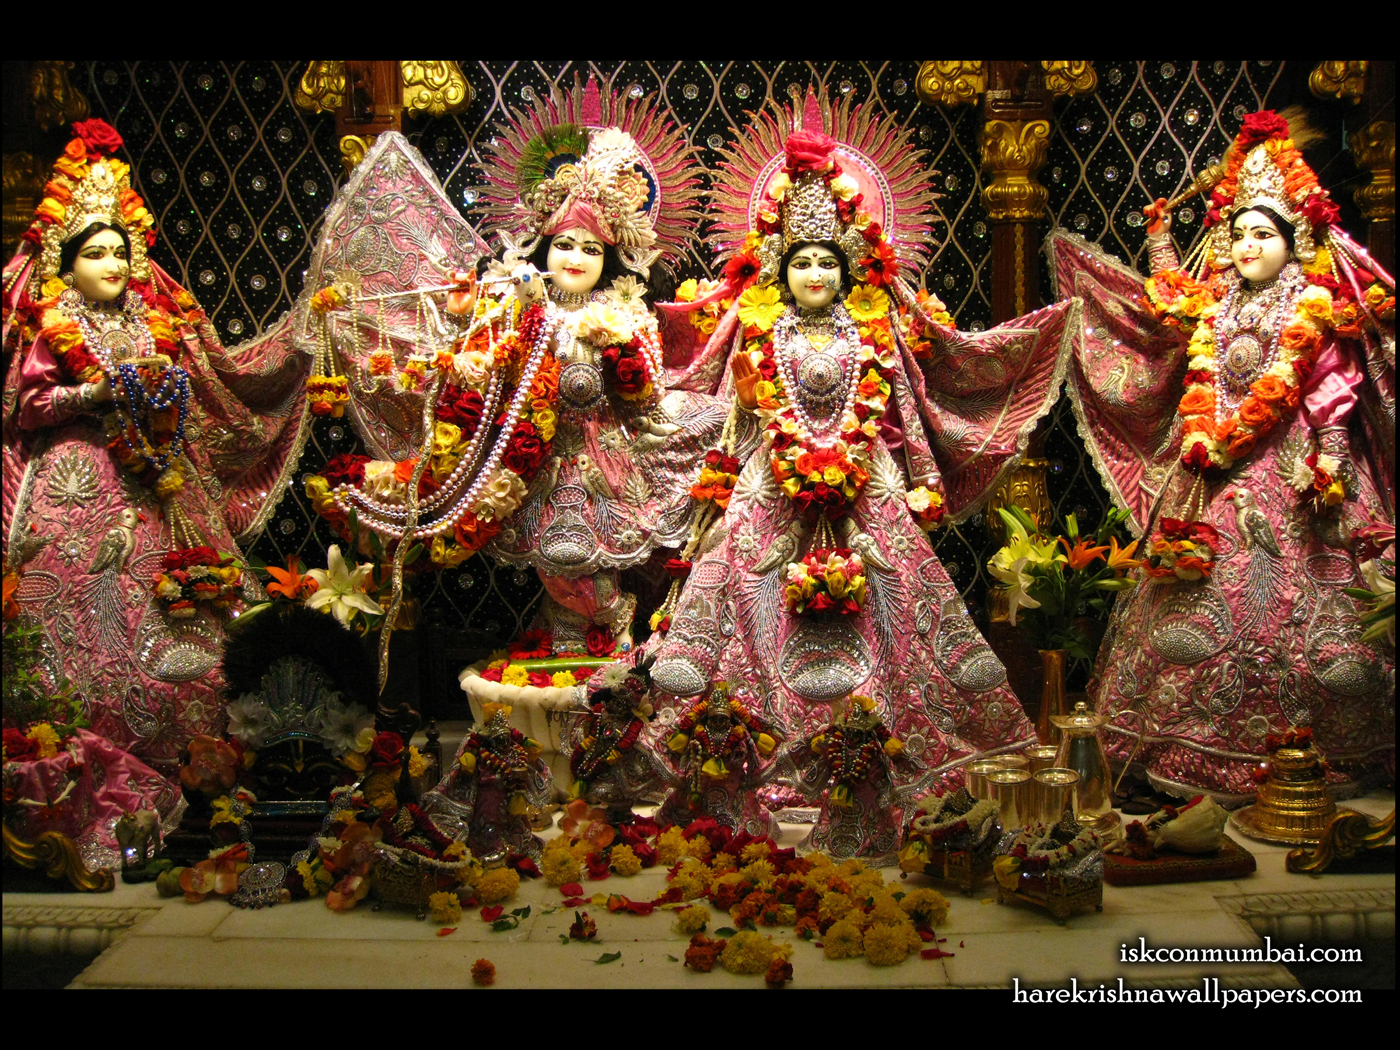 Sri Sri Radha Rasabihari Lalita Vishakha Wallpaper (008) Size 1400x1050 Download